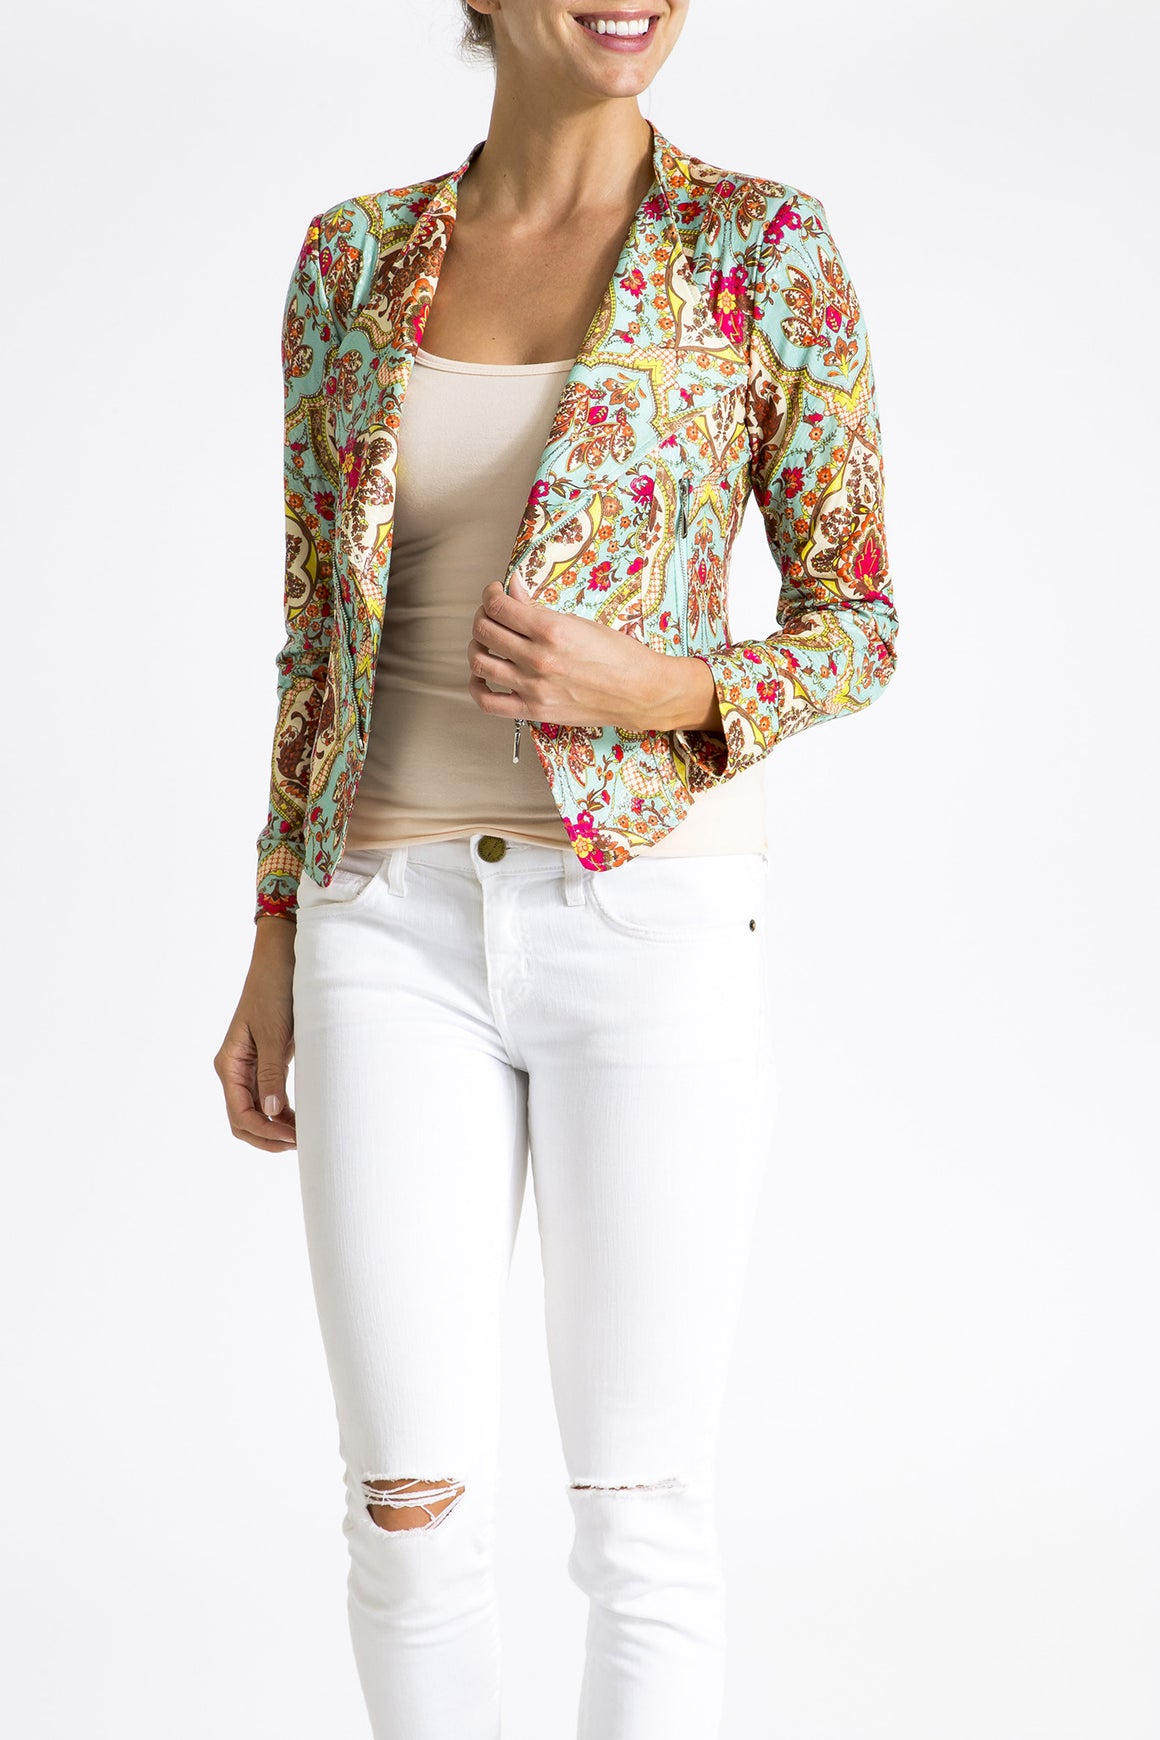 The Little Diva Jacket - Venetian Garden